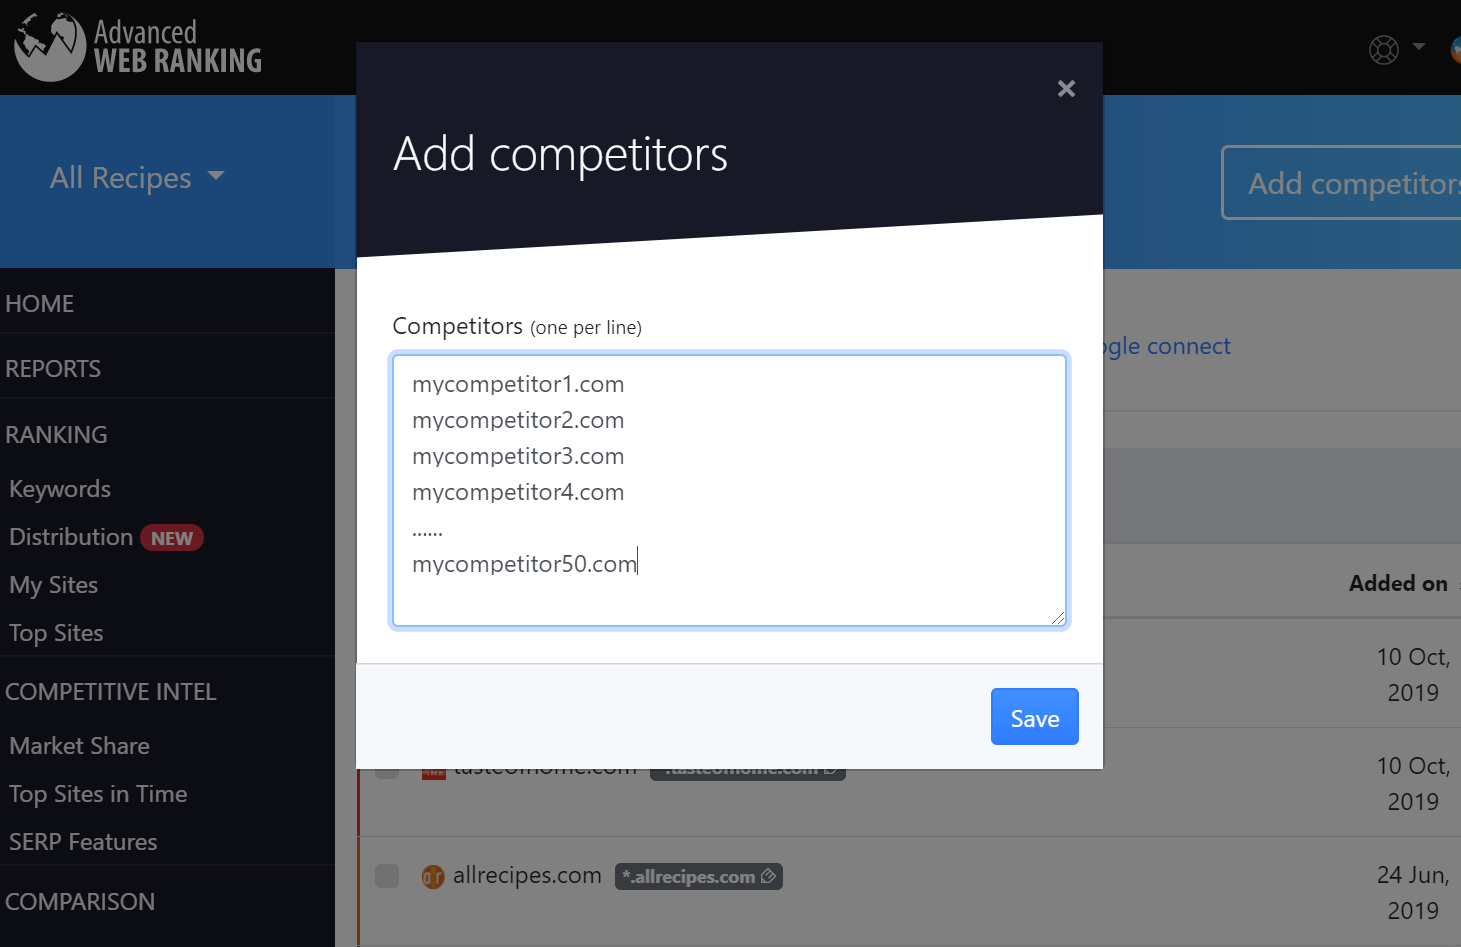 Adding competitors for tracking in Advanced Web Ranking projects.